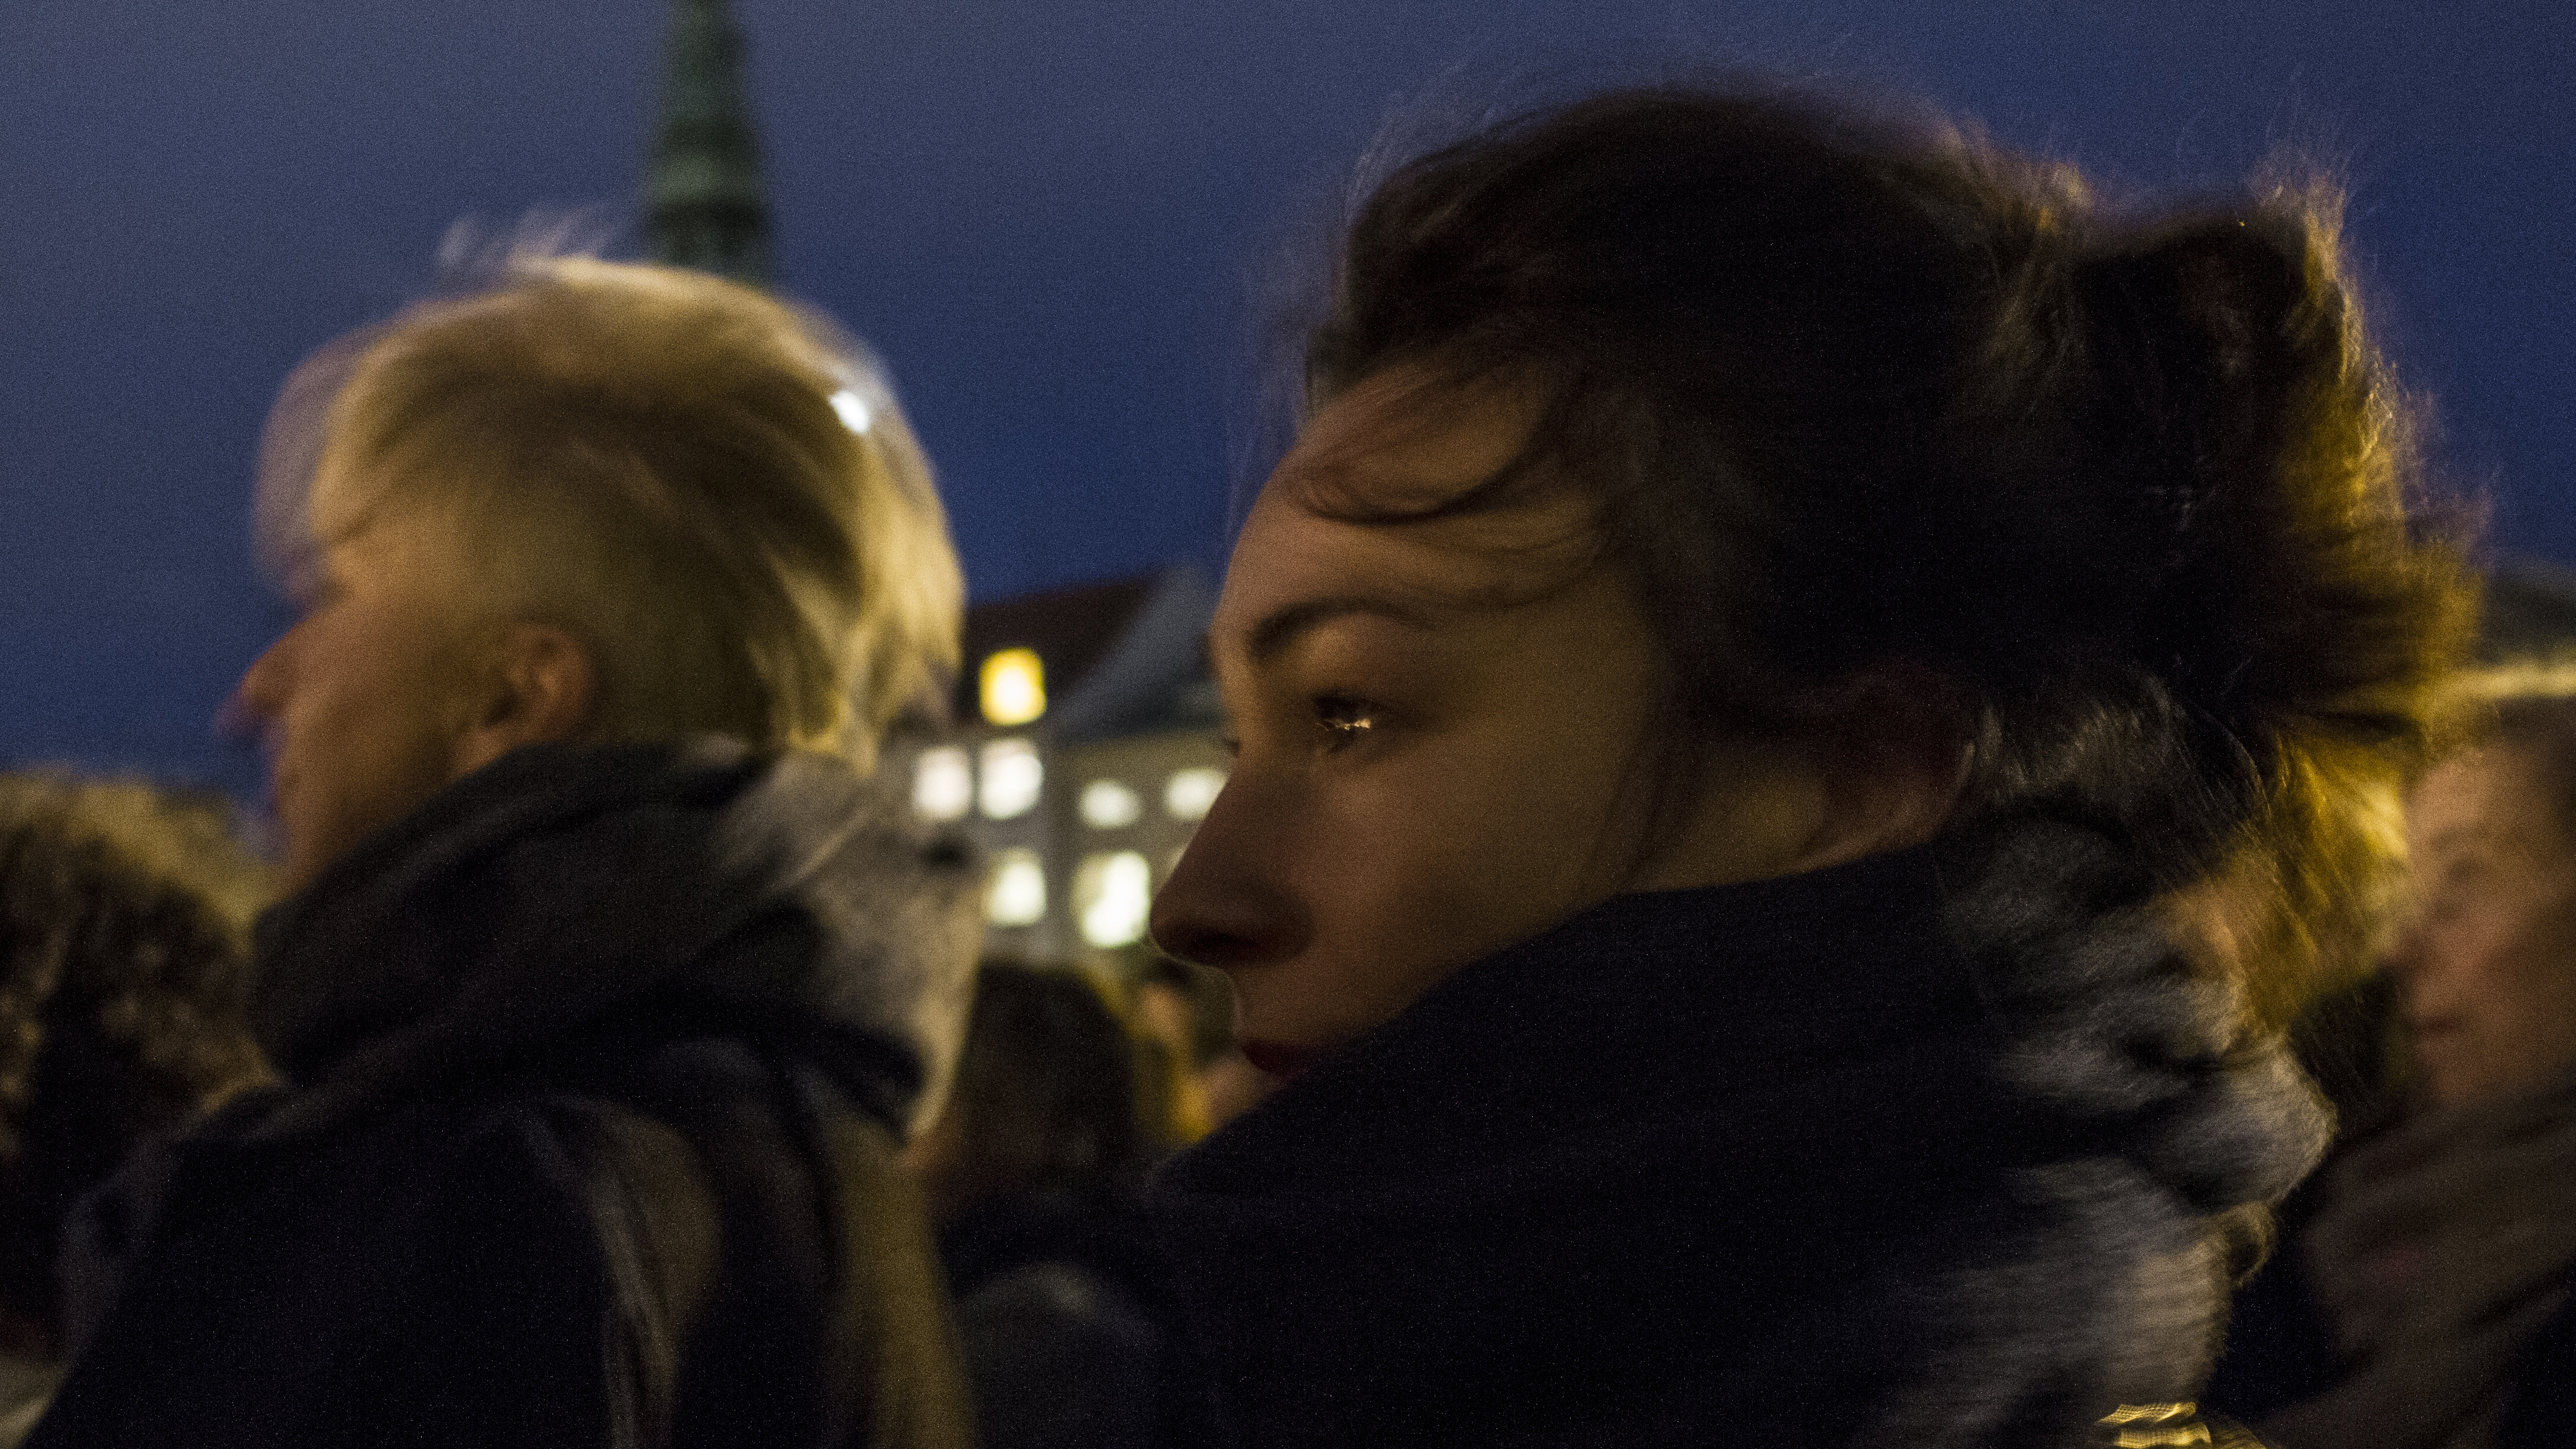 Sanja Golubovic (r) and her friend Branka Saric (l) at a rally demanding the Danish government accept more refugees and migrants. Both came to Denmark as refugees from Bosnia.